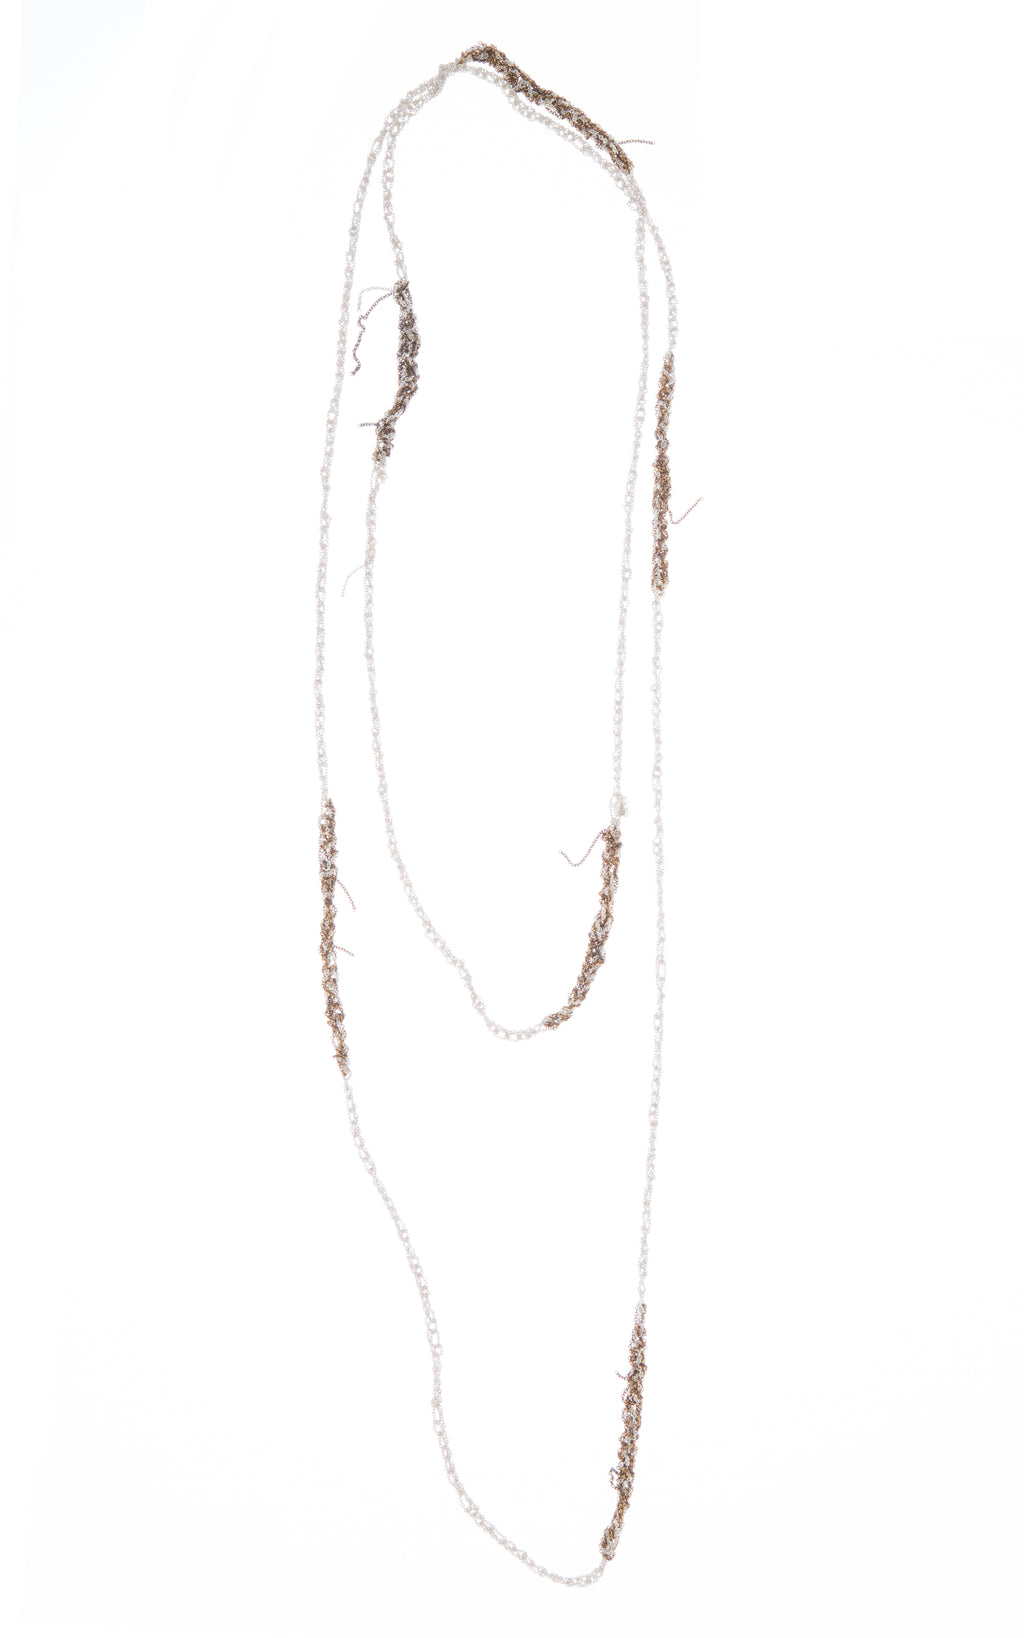 Melded Simple Necklace in Silver + Burnt Gold